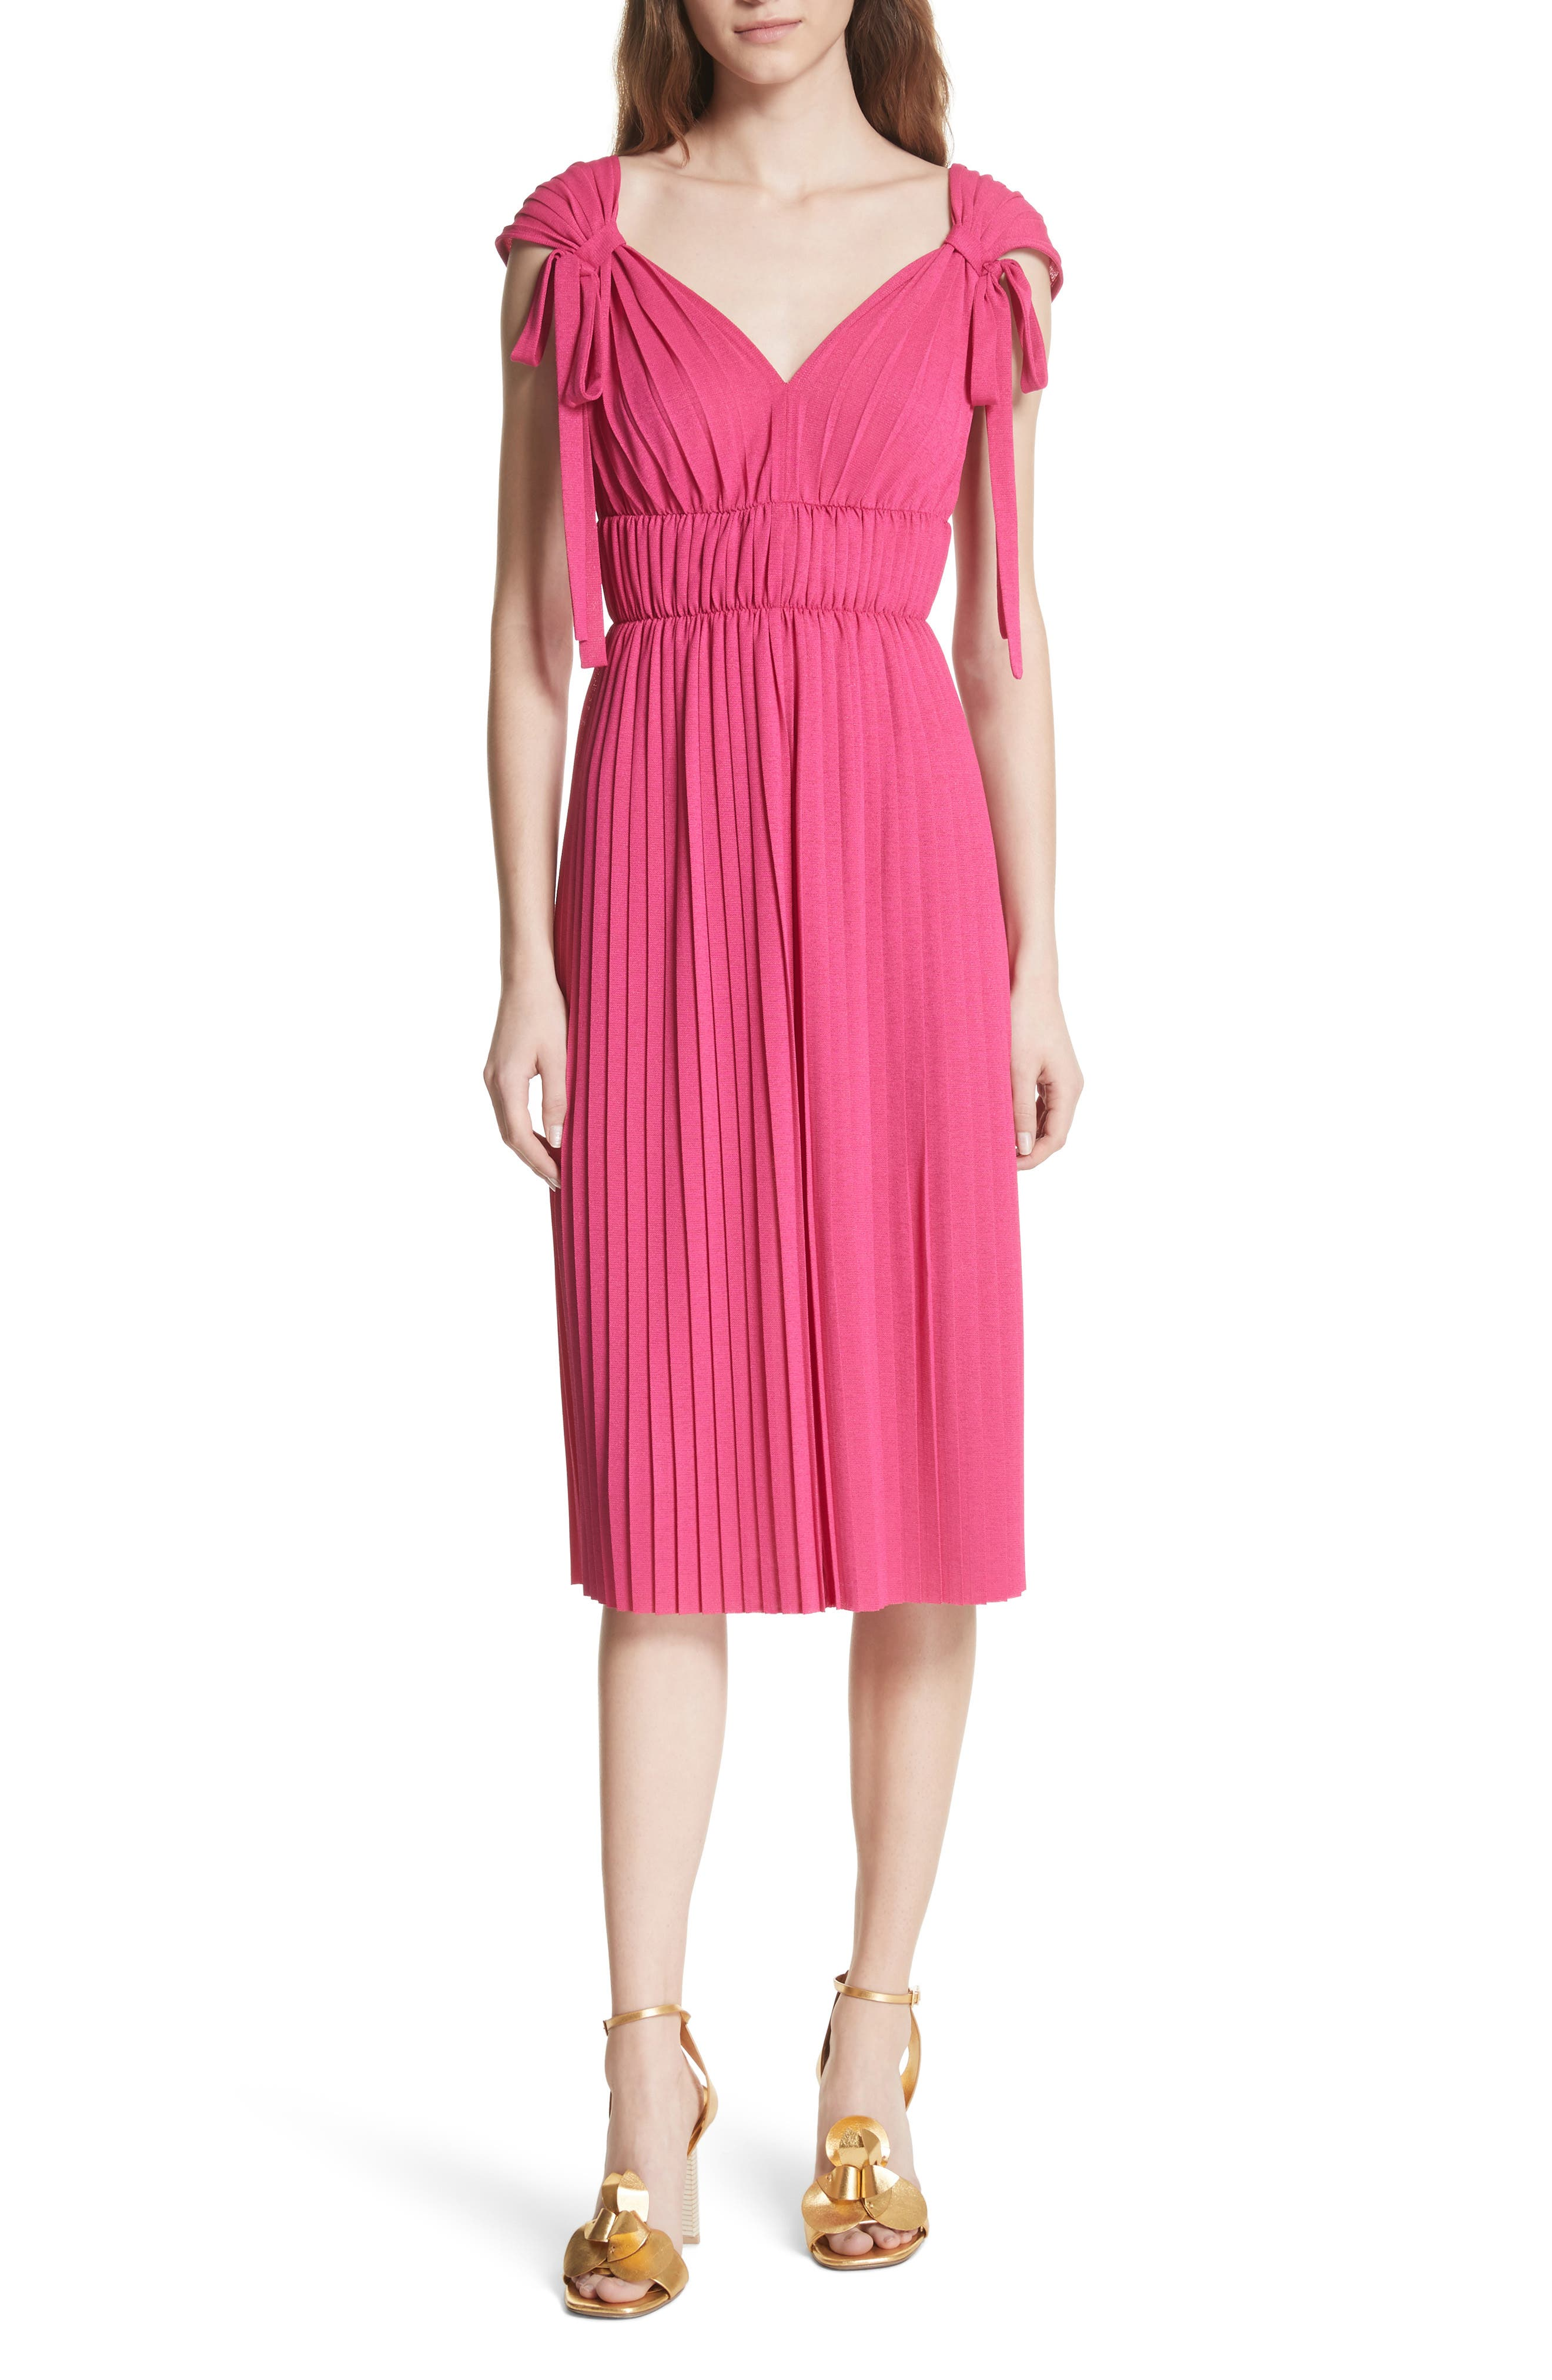 TRACY REESE Grecian Pleat Dress, Main, color, 664